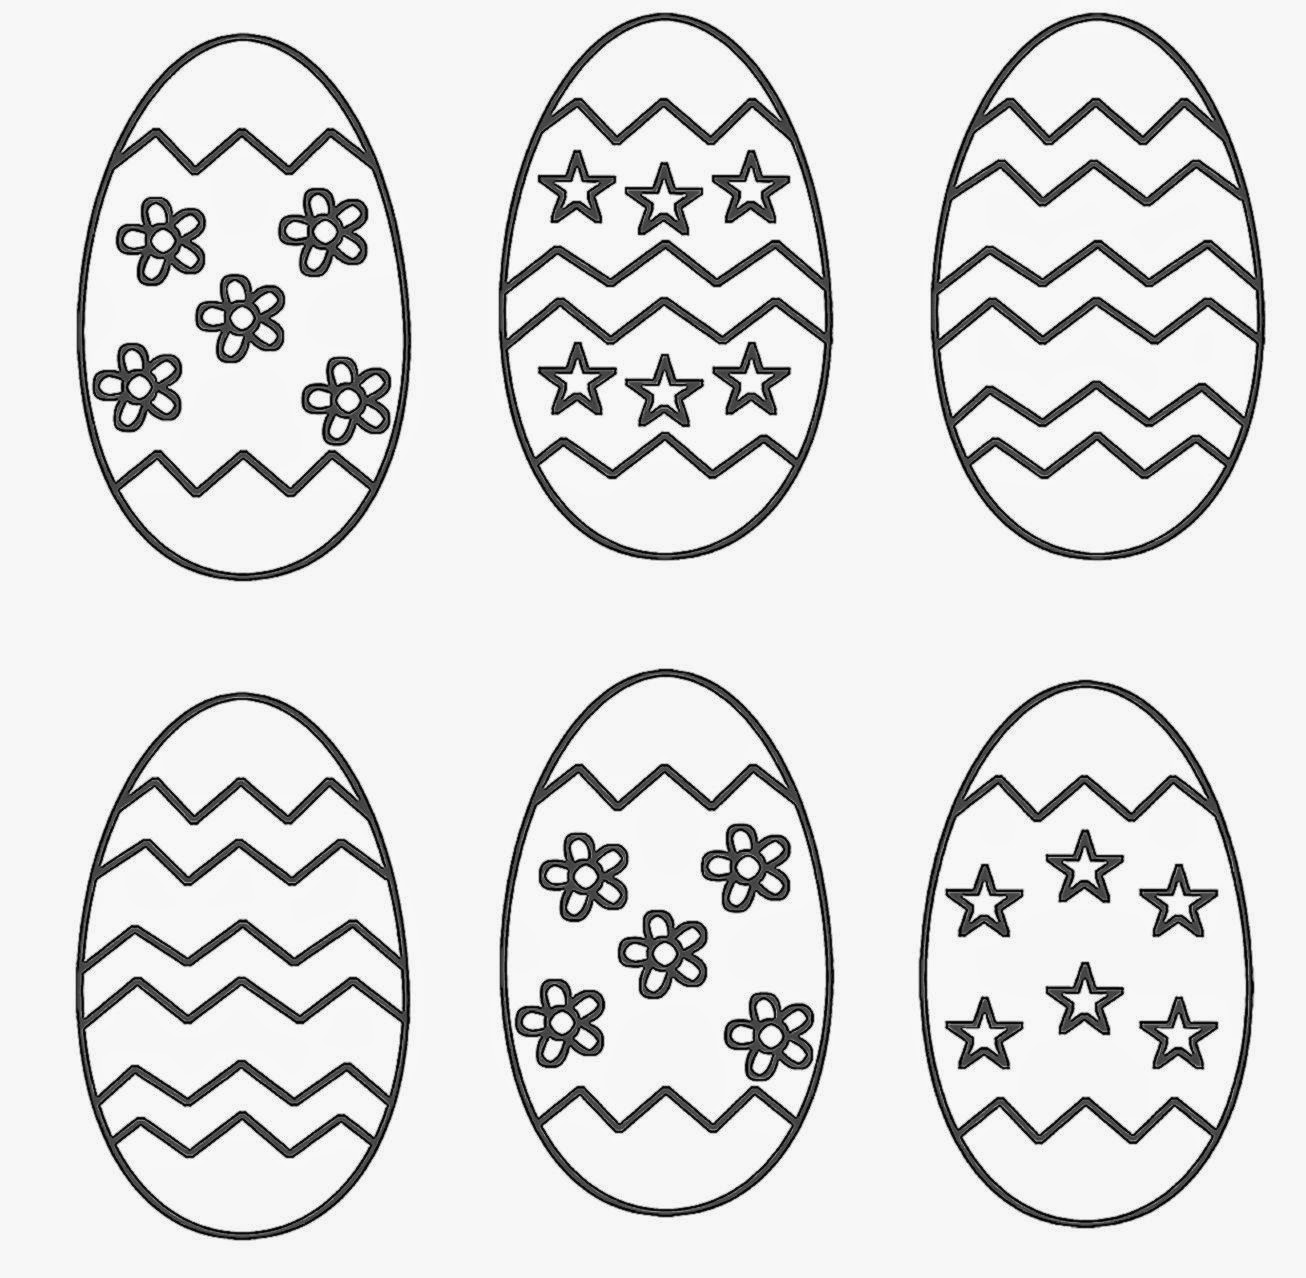 Easter Egg Coloring Sheets   Free Coloring Sheet